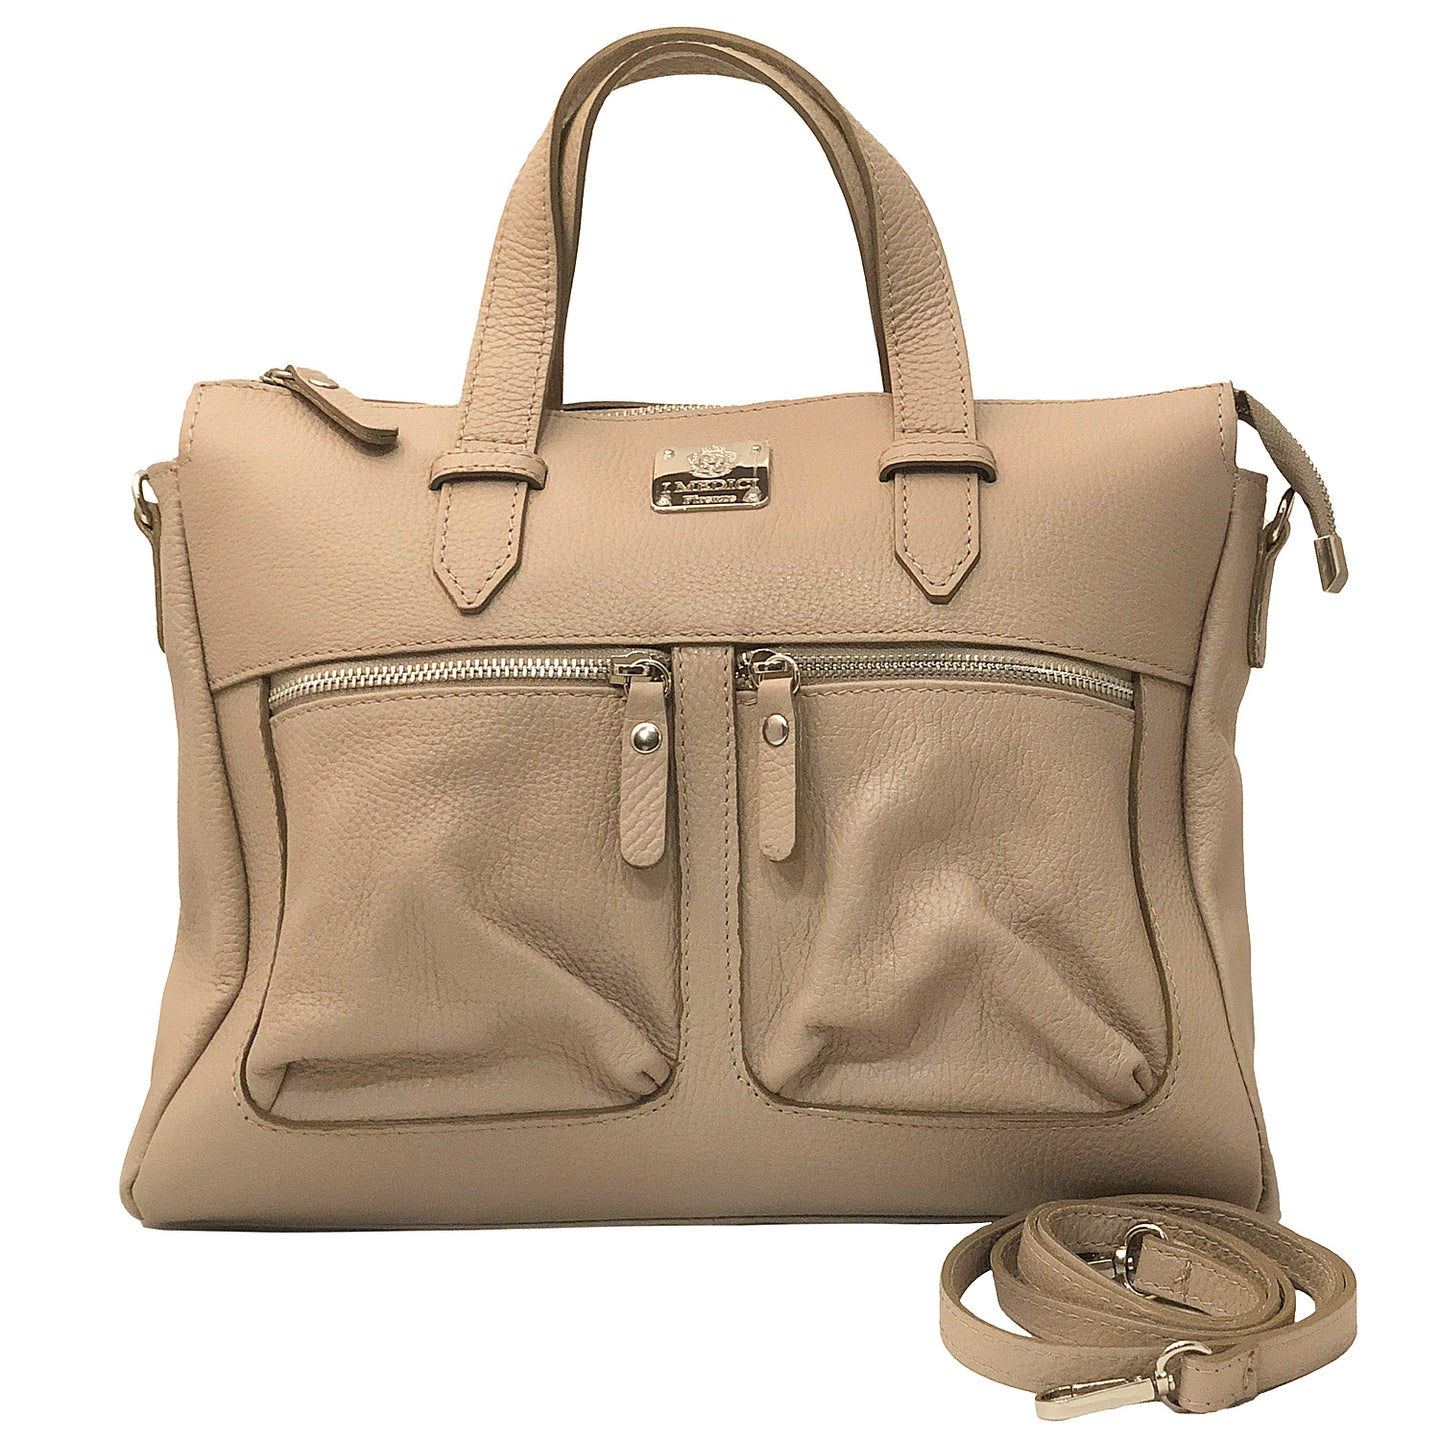 I Medici D9 Italian Cream Leather Top Handle Tote Handbag